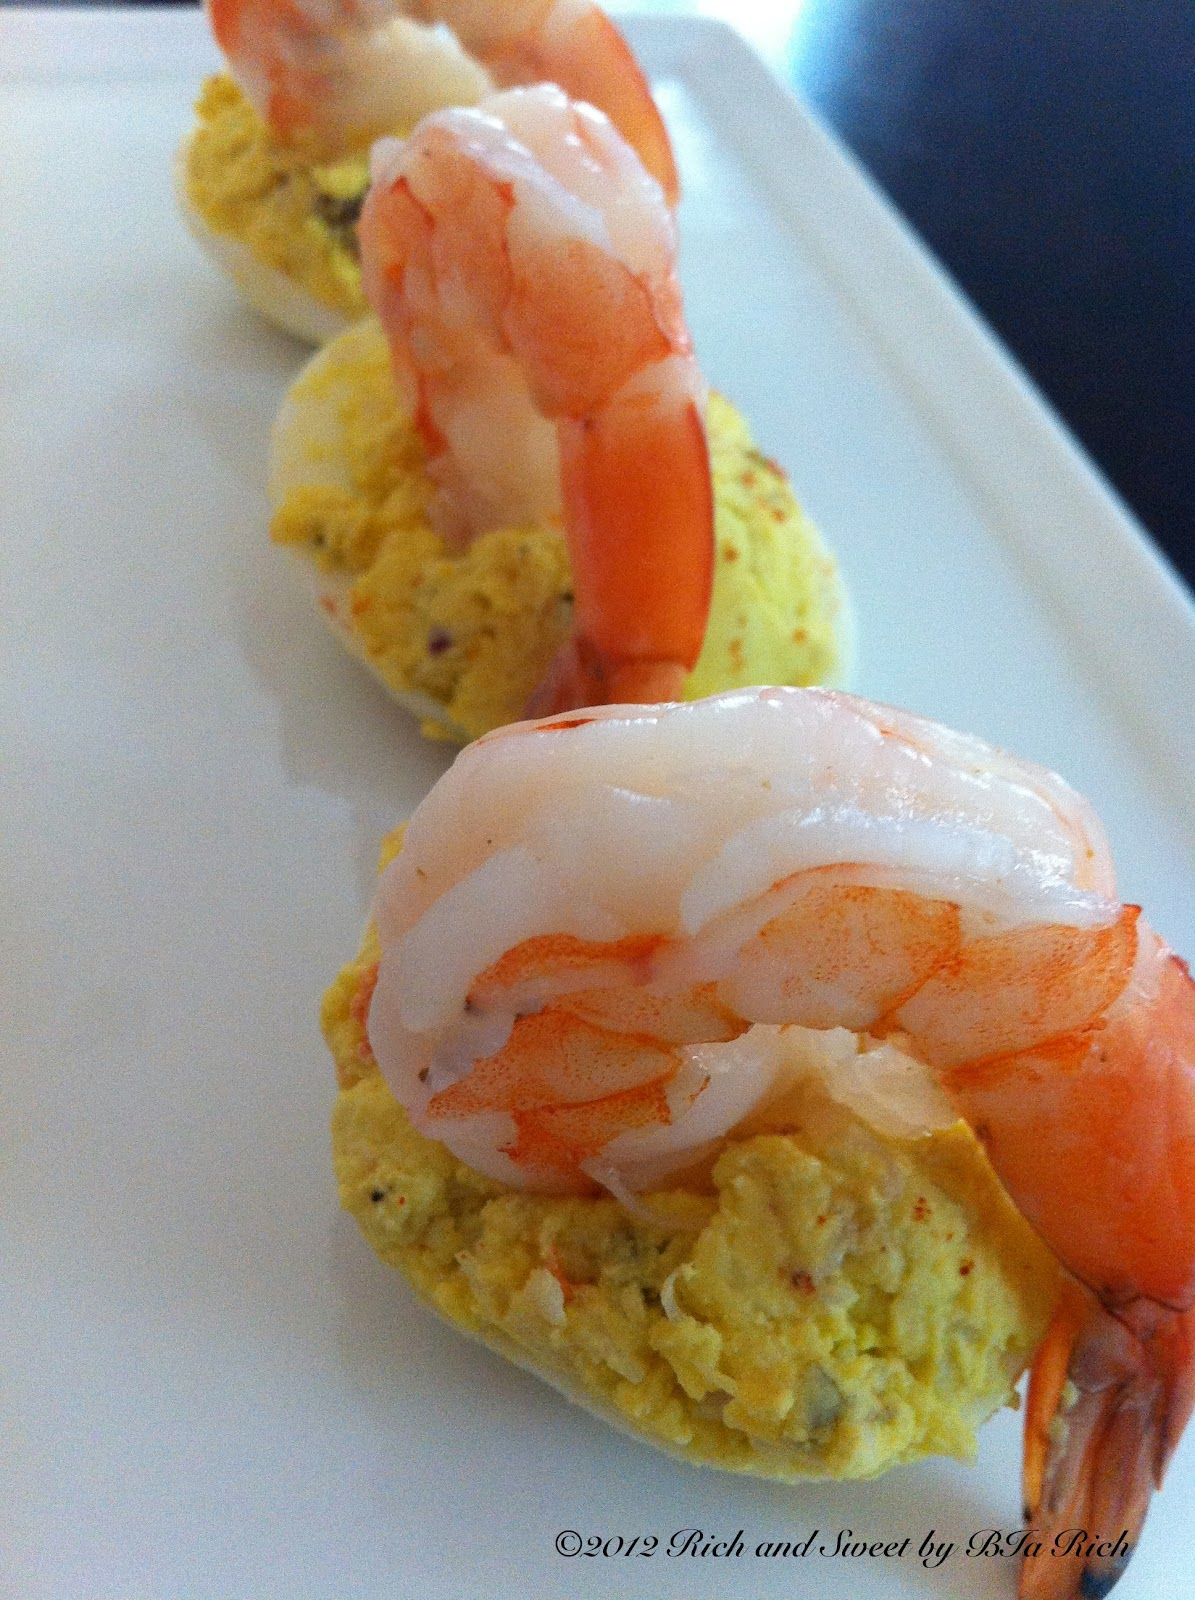 Rich and Sweet by Bia Rich: Shrimp and Crab Deviled Eggs